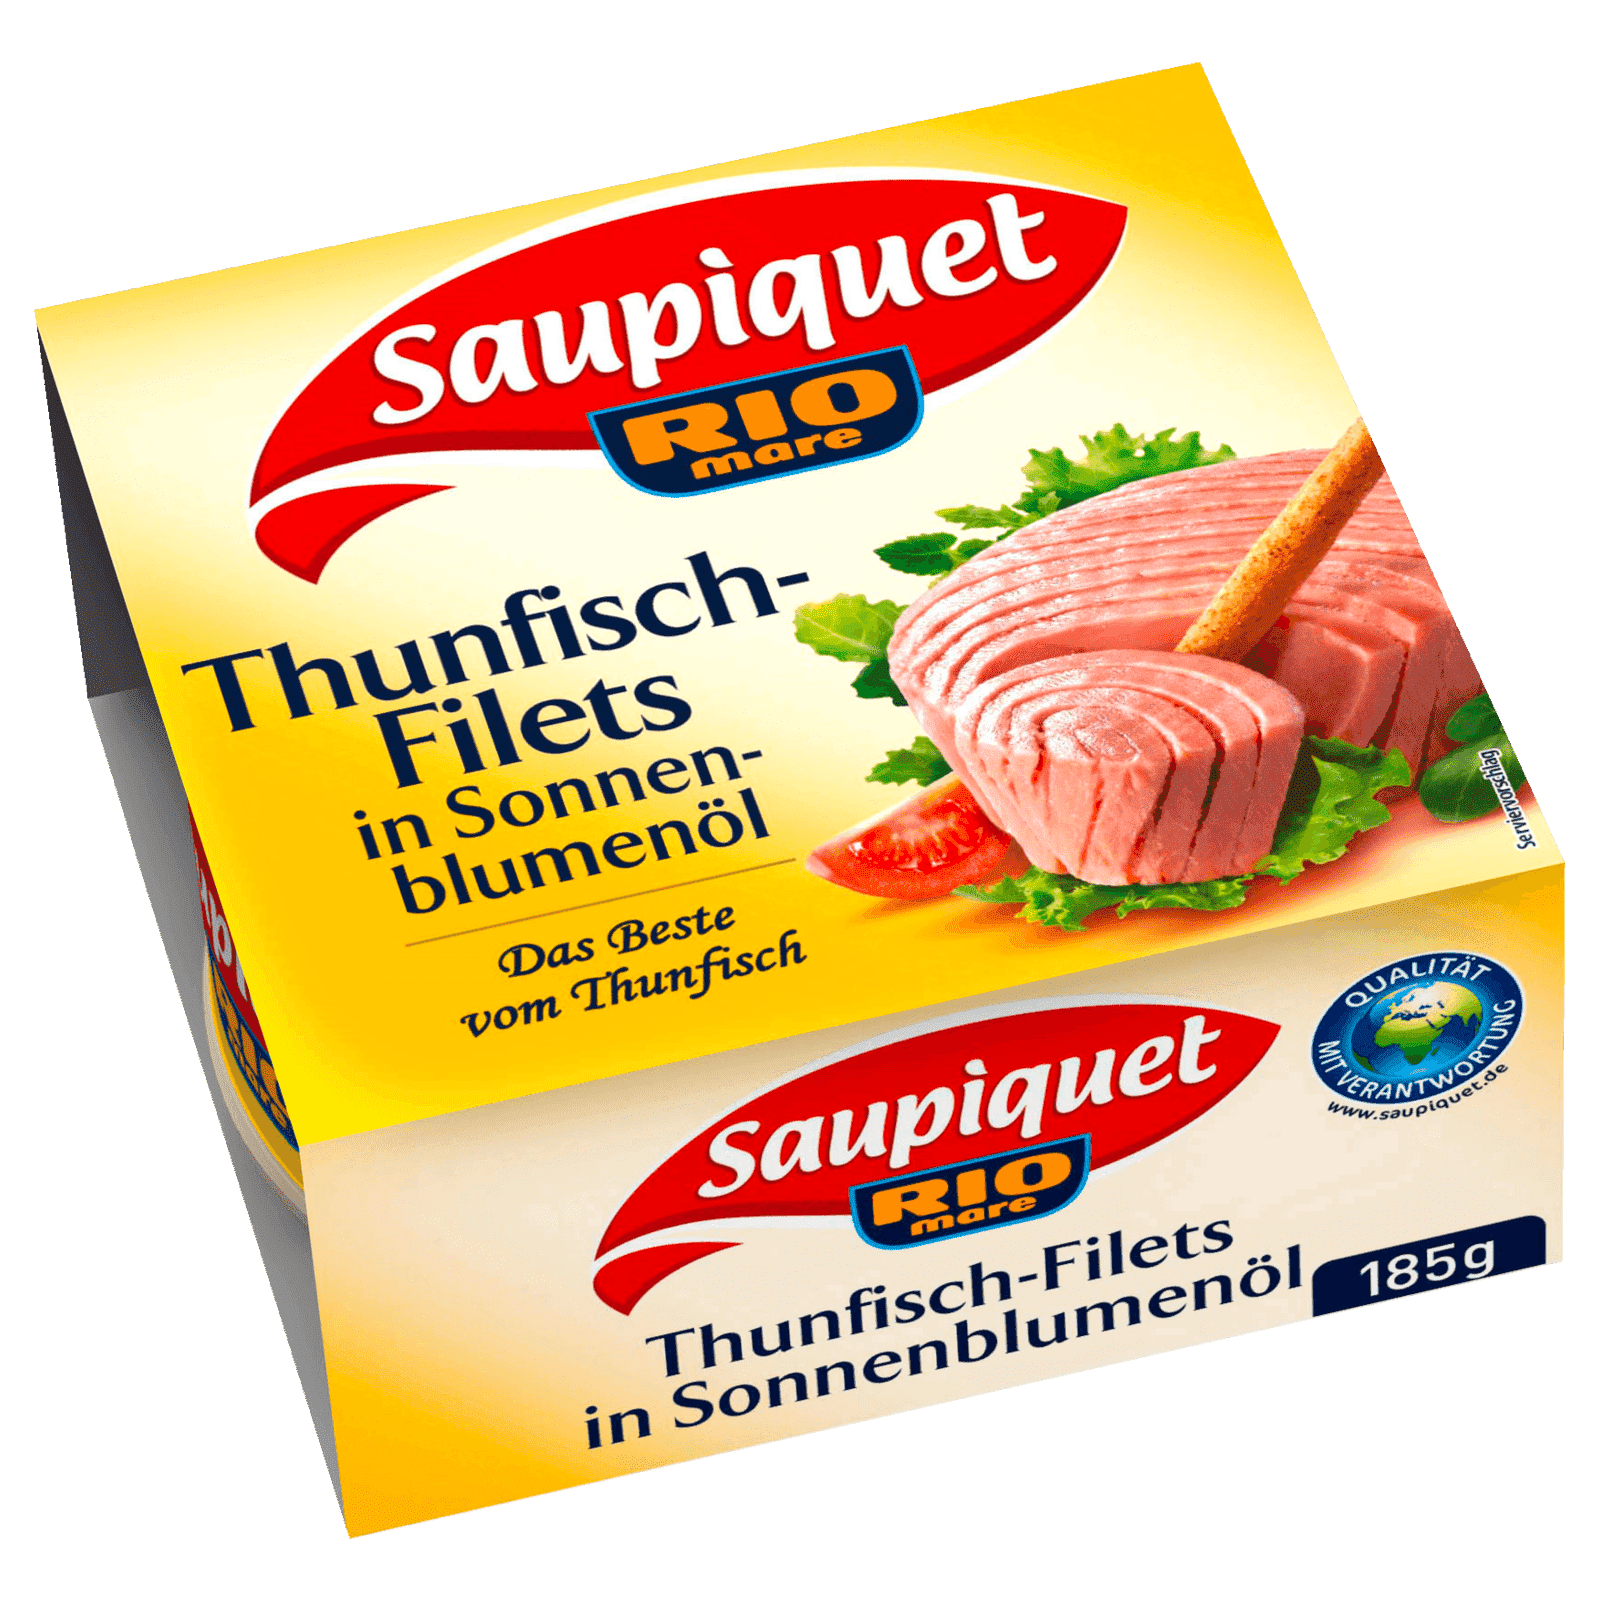 Saupiquet Thunfisch-Filets, versch. Sorten